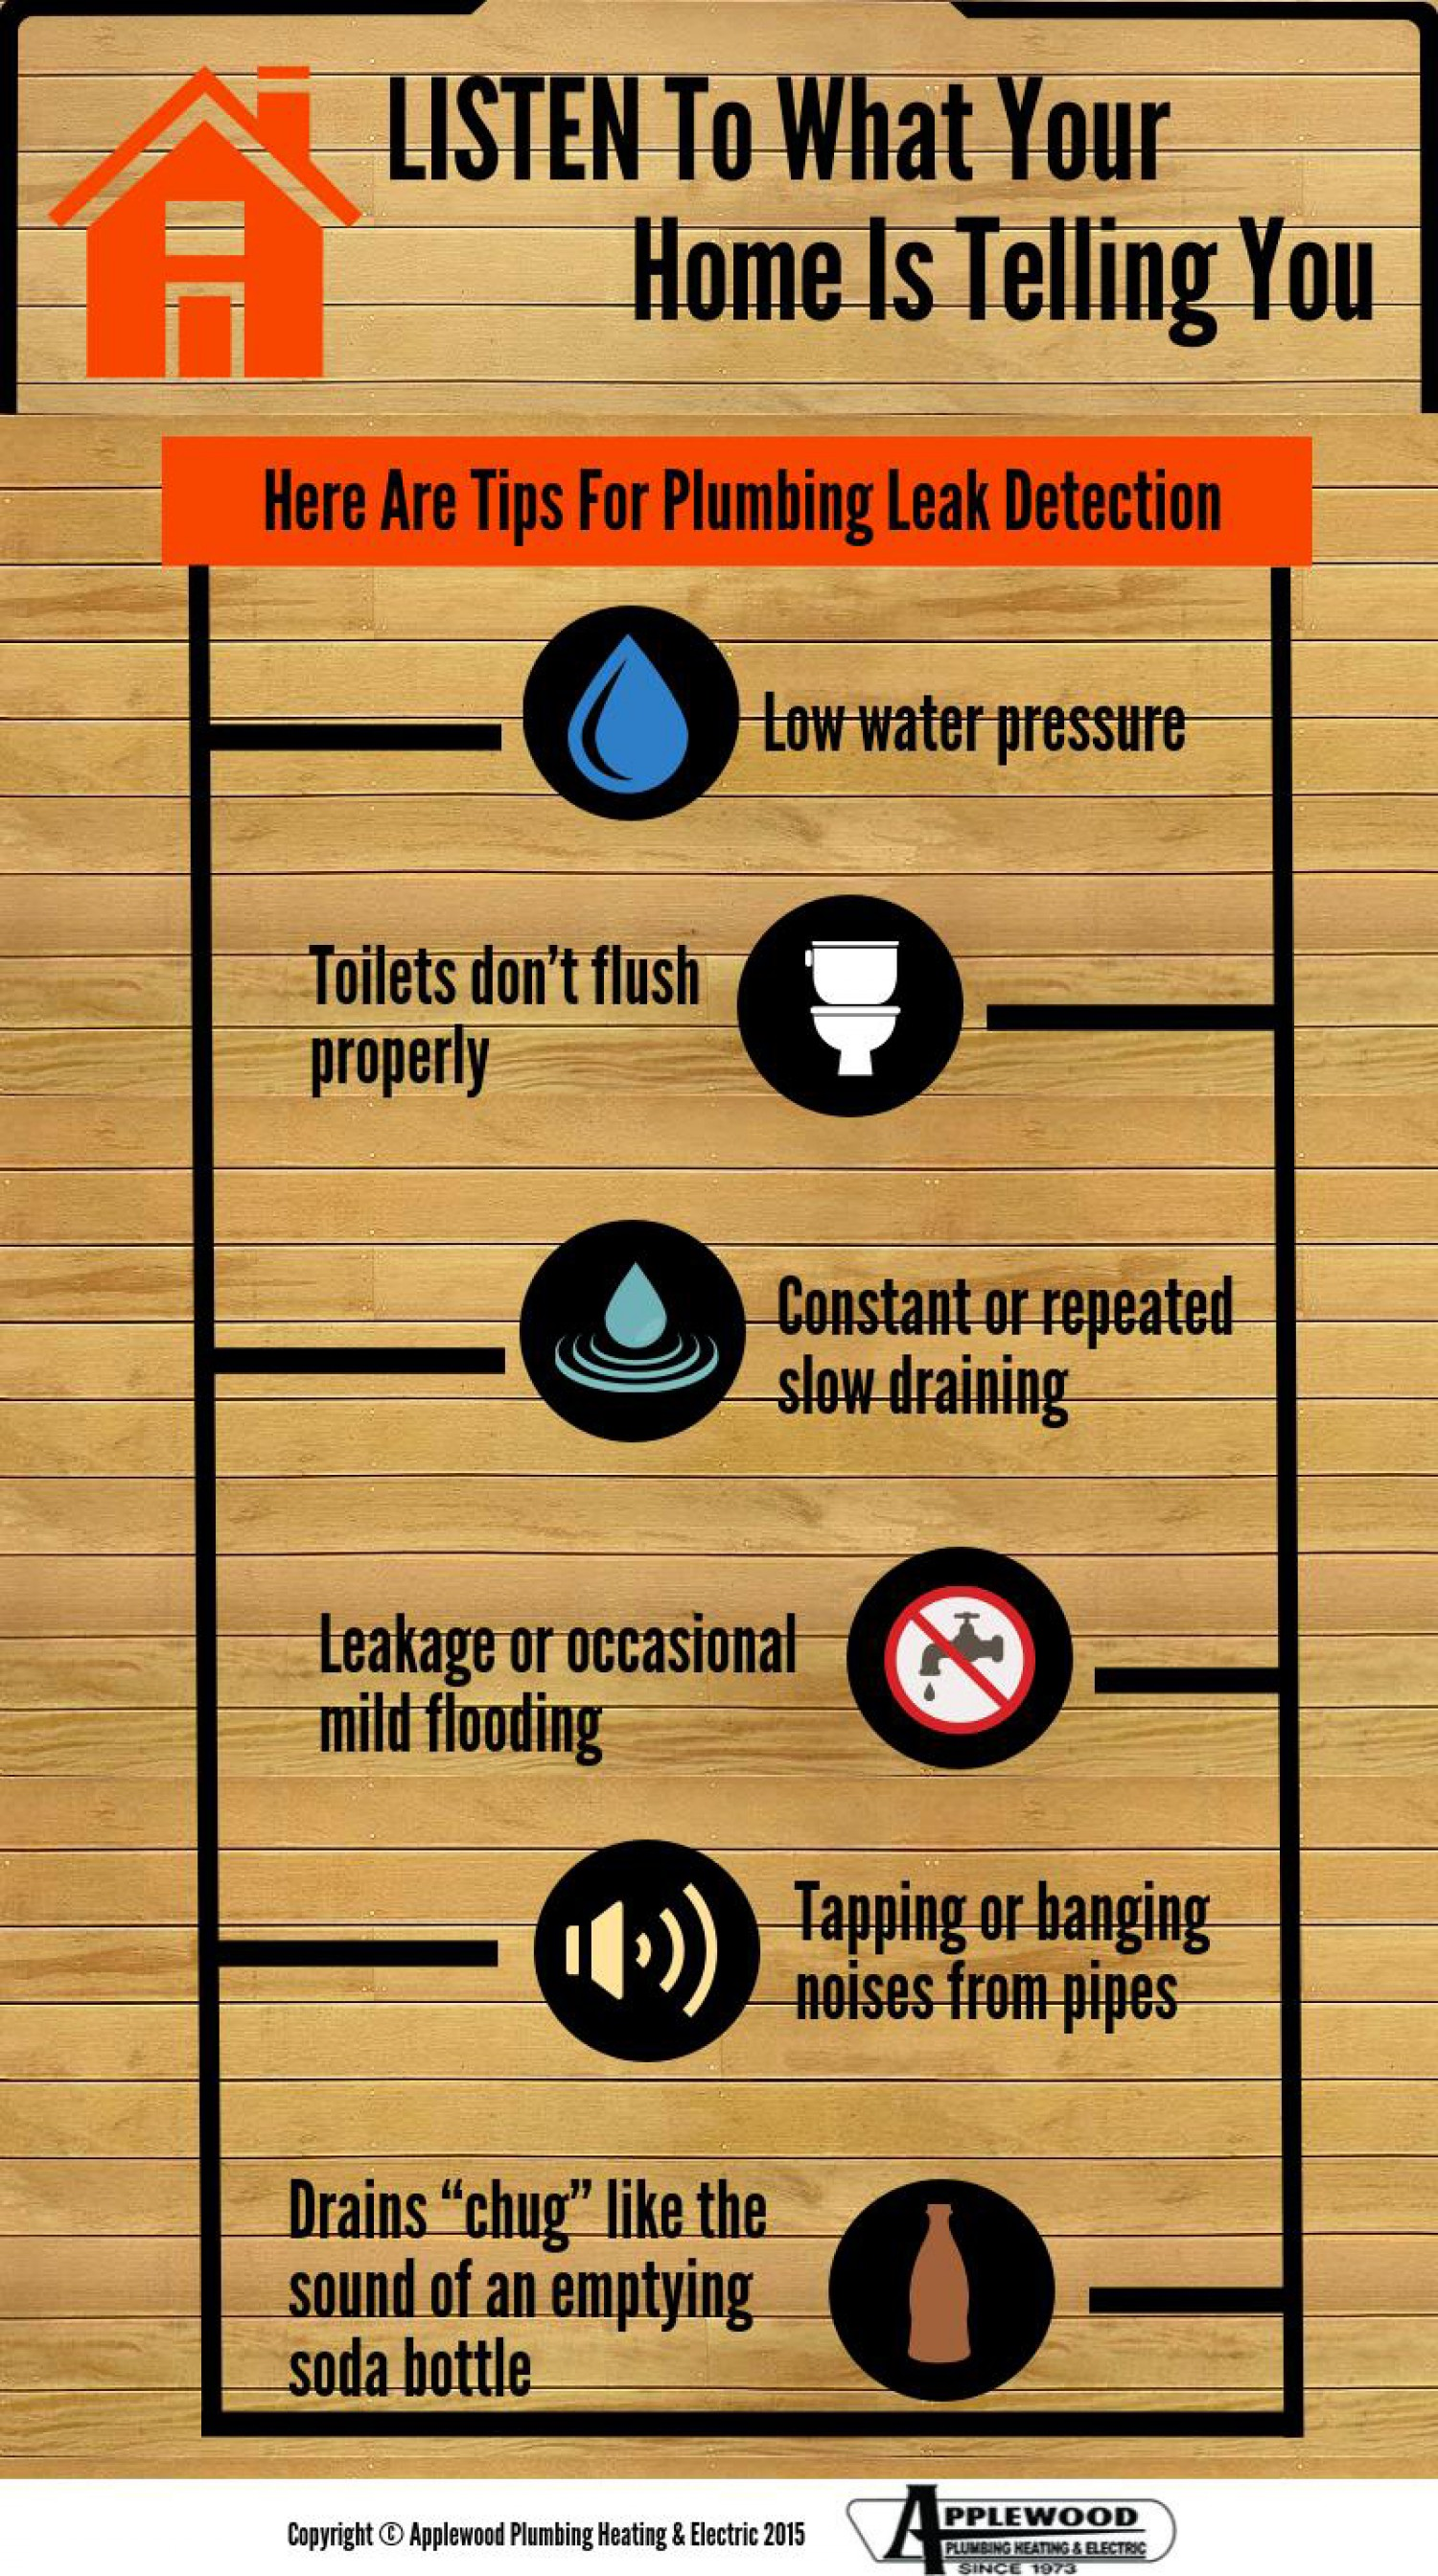 Tips for plumbing leak detection! If you have a plumbing leak please shut off your water and call us immediately or use the app to schedule a plumbing service. The app will send it straight to our plumbers!